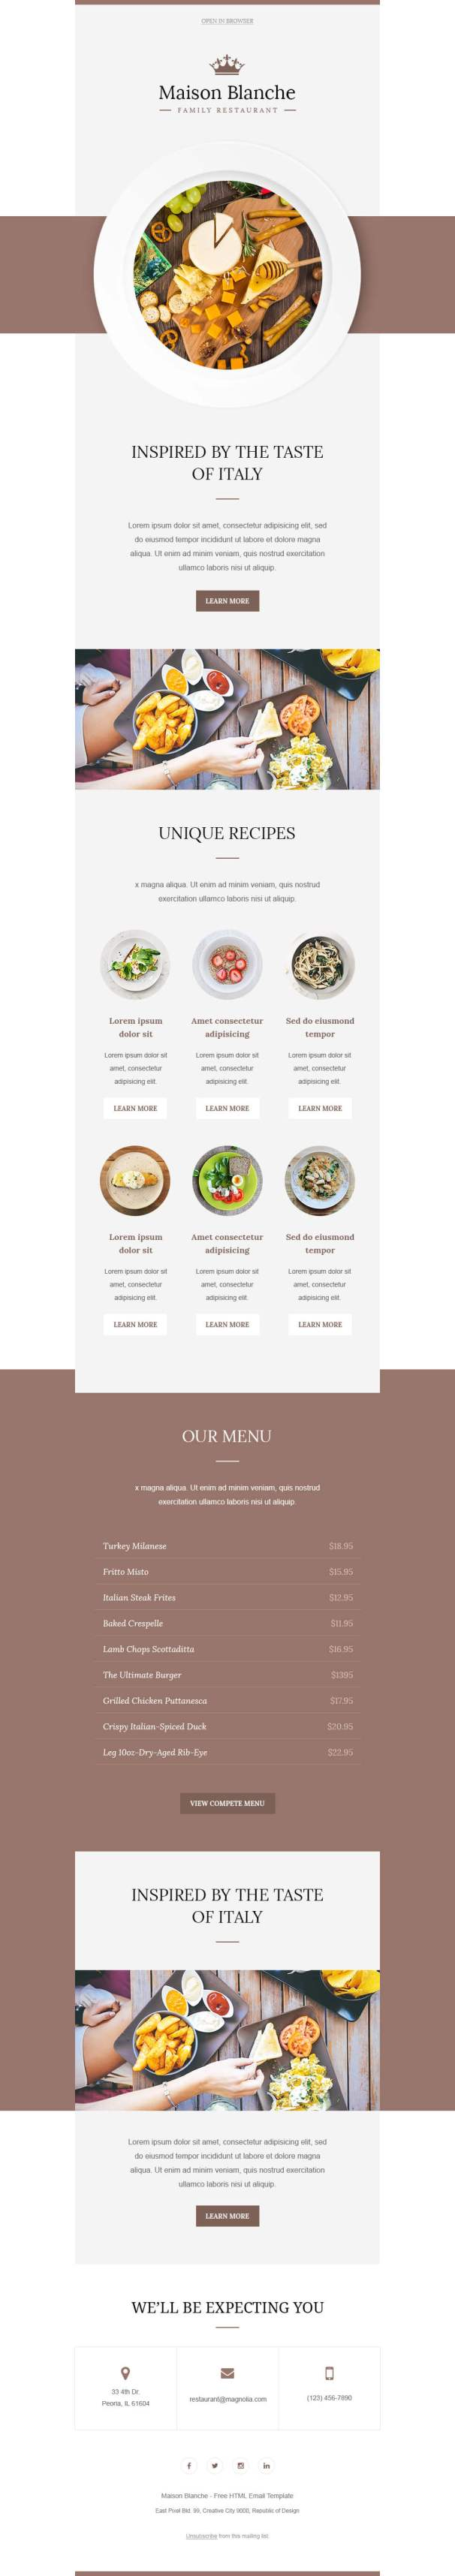 MB_Freemium-Templates_Food-and-Restaurants_2